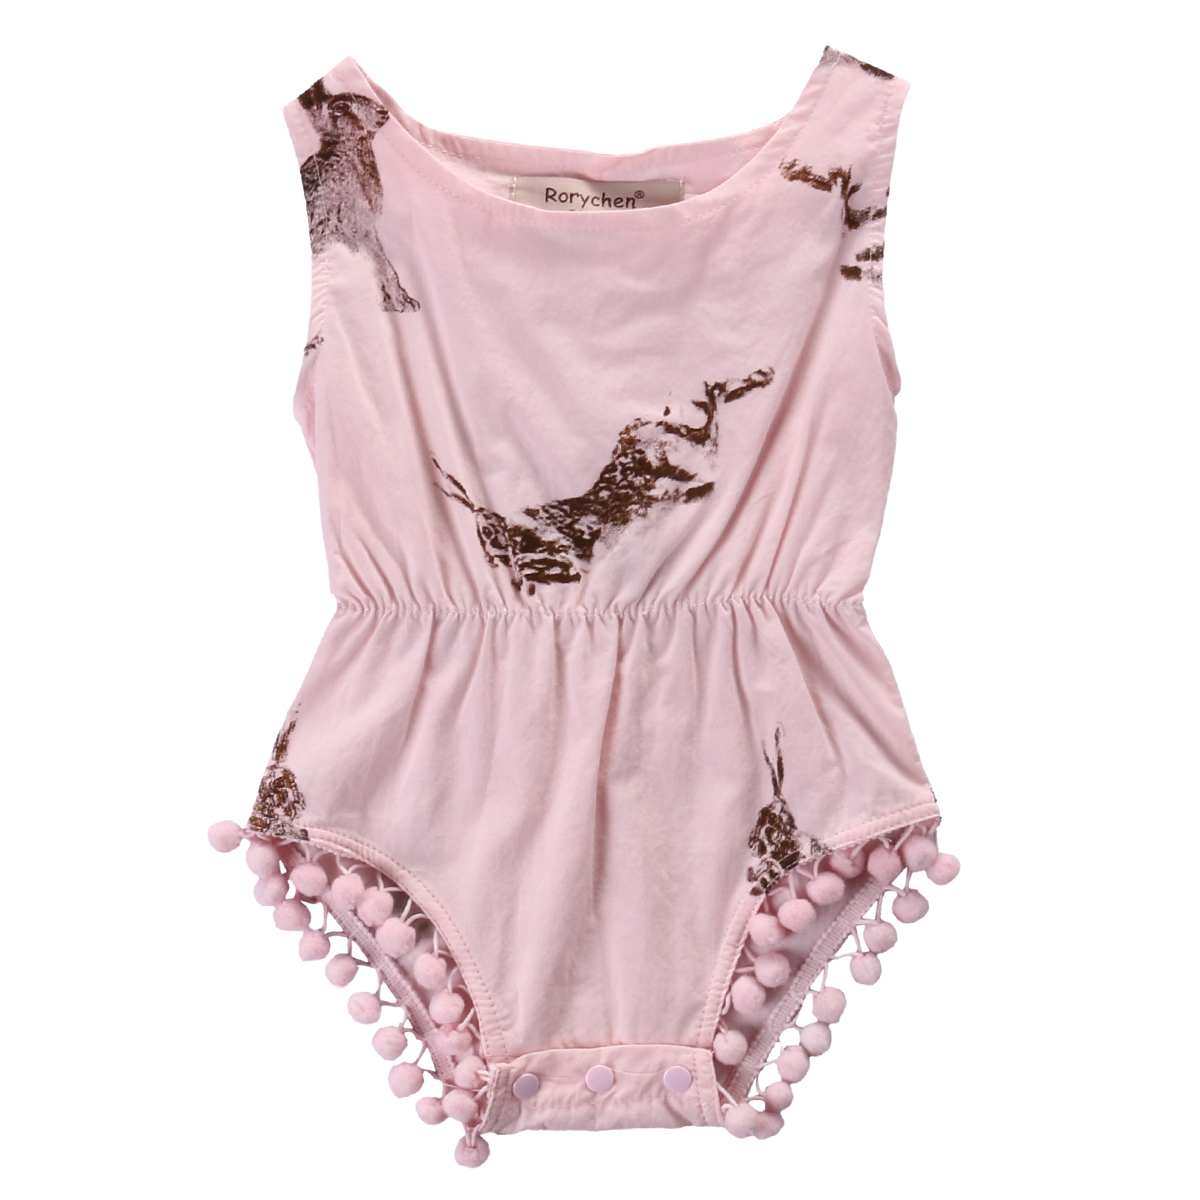 Newborn Infant  Baby Girls Clothes Rabbit Rompers Cotton  Sunsuit Bunny Pattern Baby Clothing pink , blue 0-24M newborn infant baby girl boys cute rabbit bunny rompers jumpsuit long sleeve clothing outfits girls sunsuit clothes